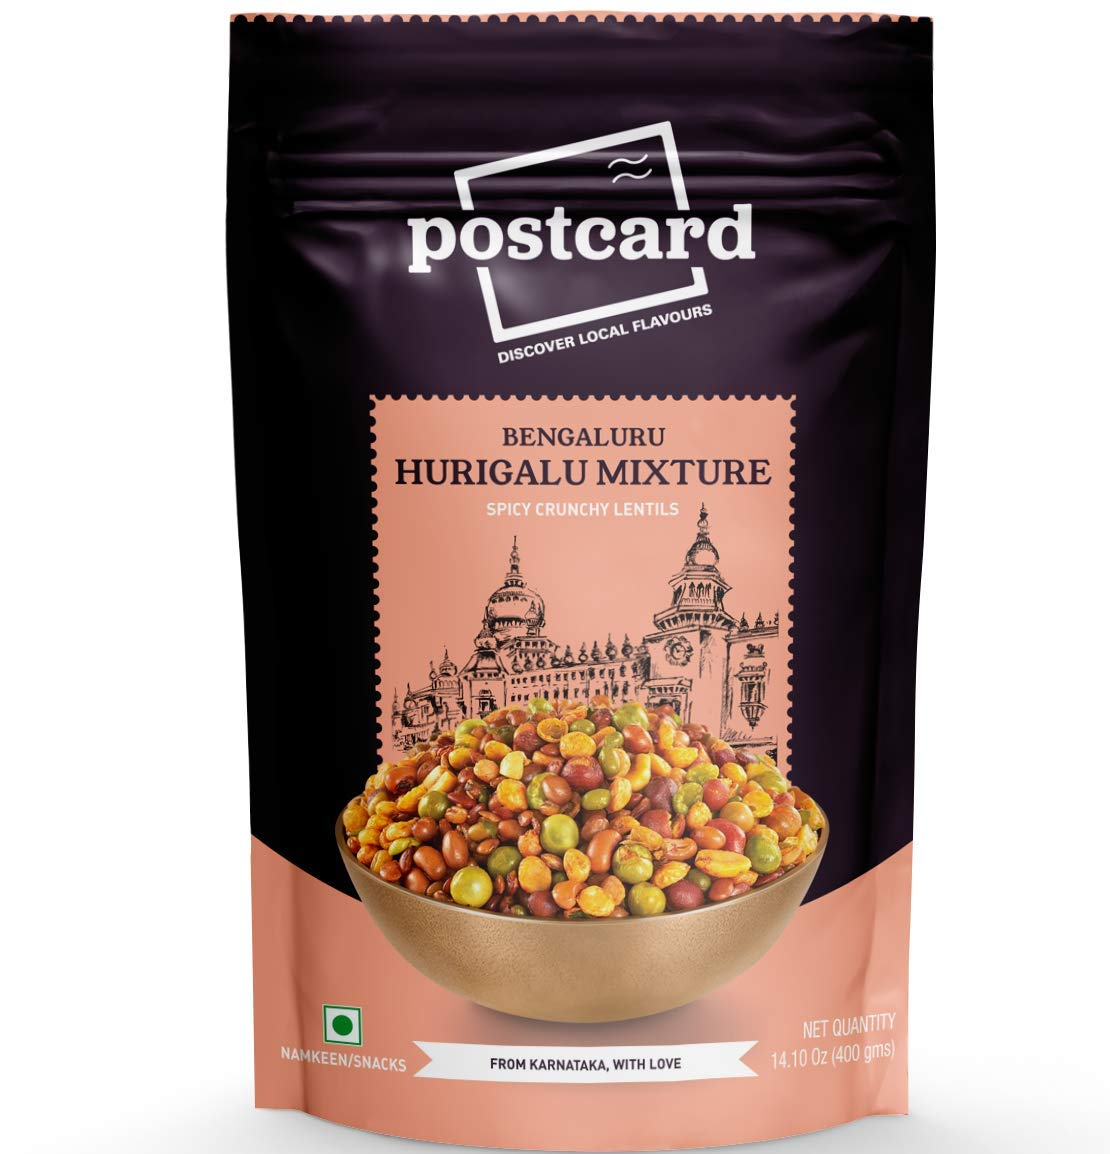 Postcard Bengaluru Hurigalu Mixture | Specialty Indian Food made in Karnataka (India) | Crunchy Spicy Lentils Mixture Snack | Spicy Mixture with Peanuts | 14.10 Oz/400 Gms